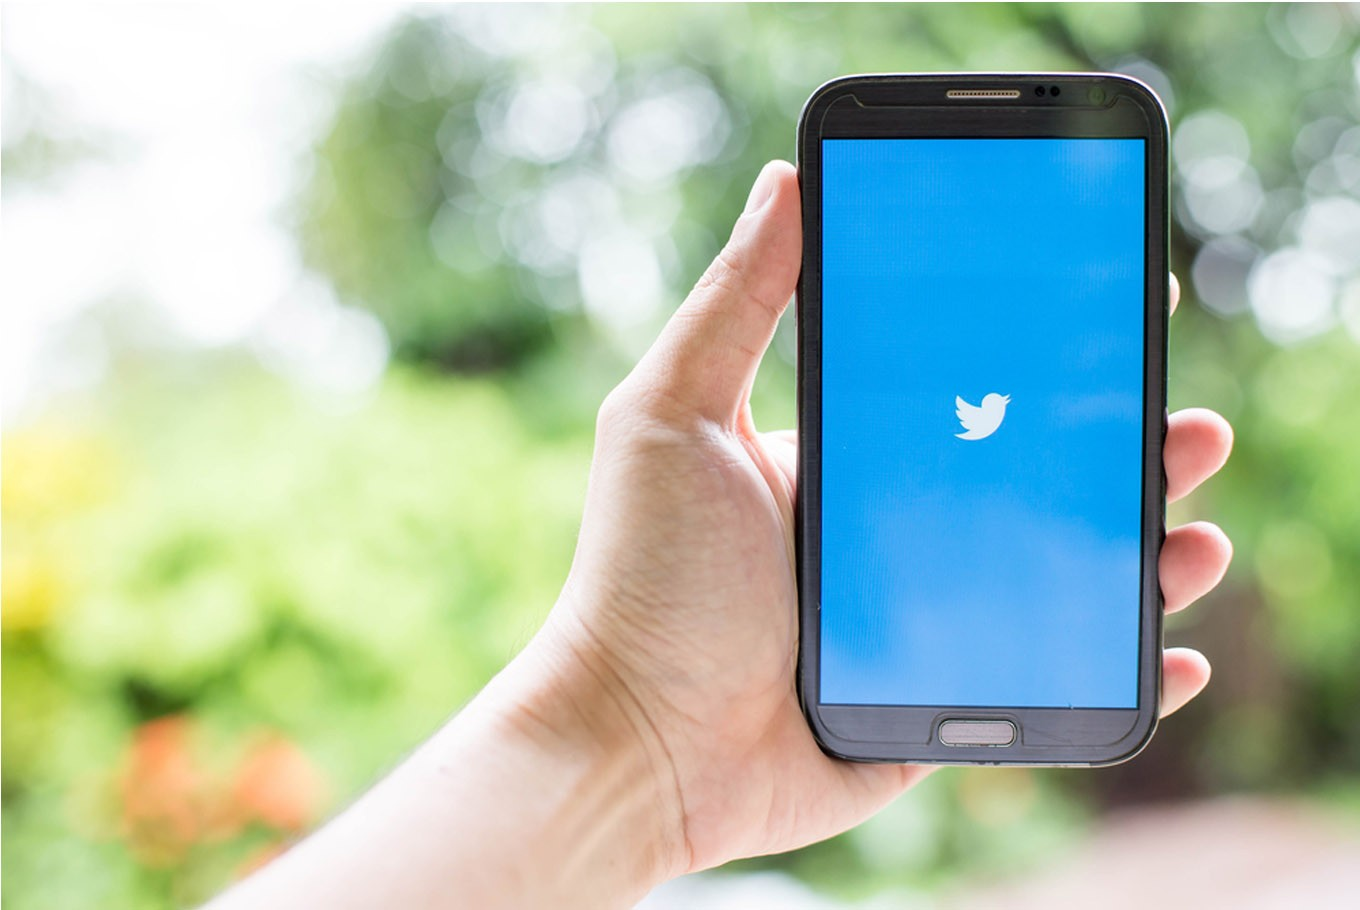 Twitter unveils more user-friendly design